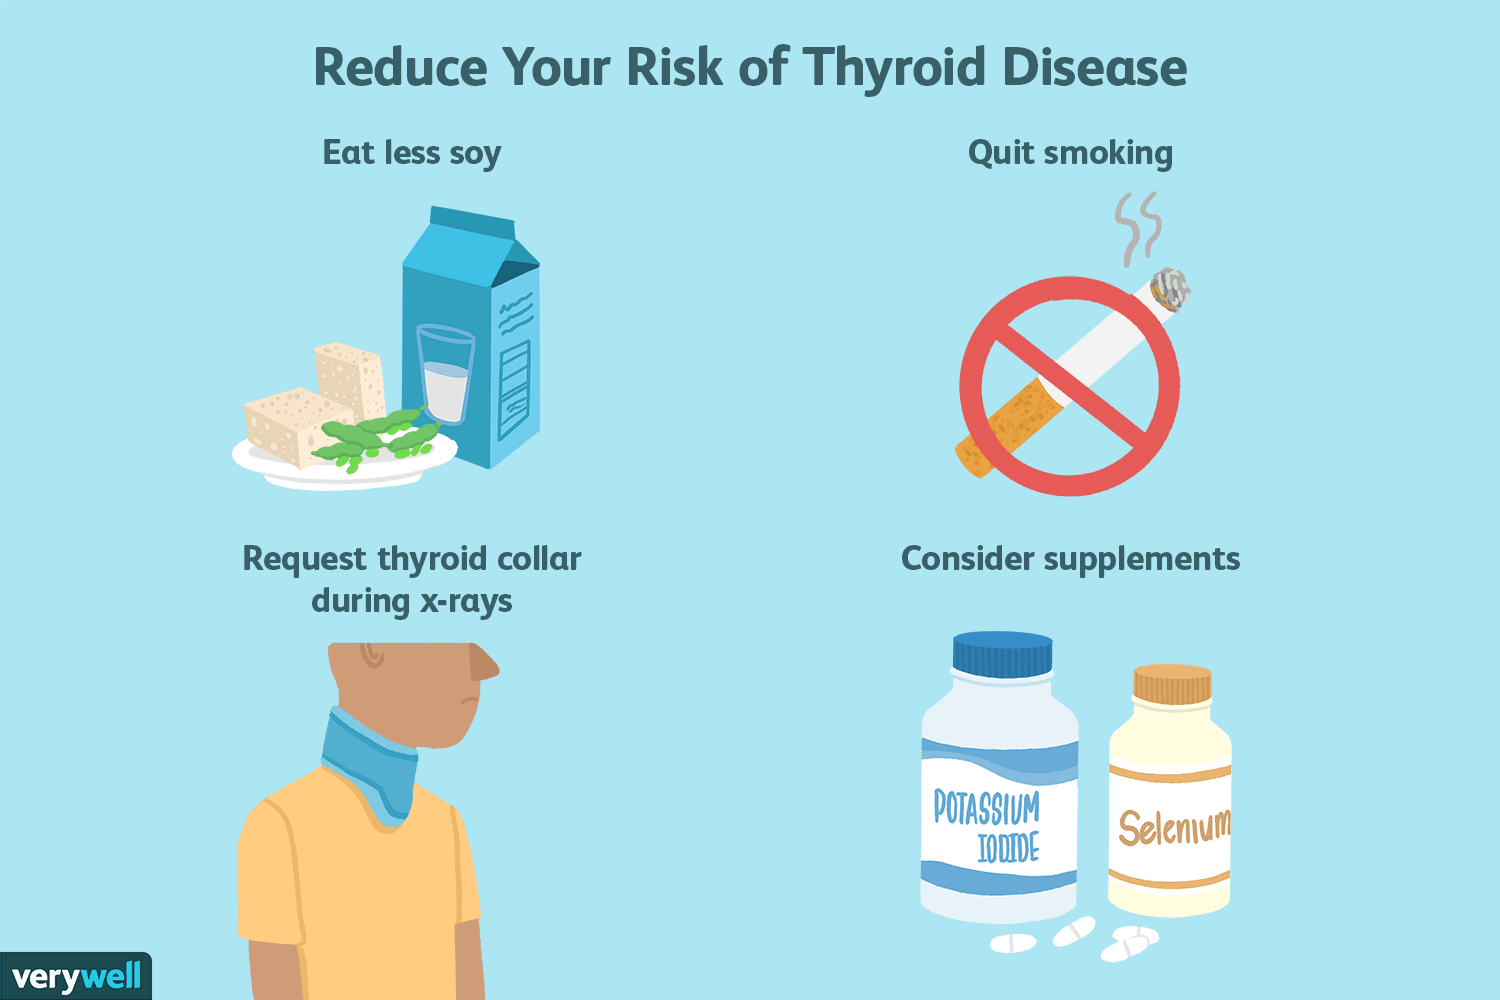 10 Ways To Reduce Your Risk Of Thyroid Disease